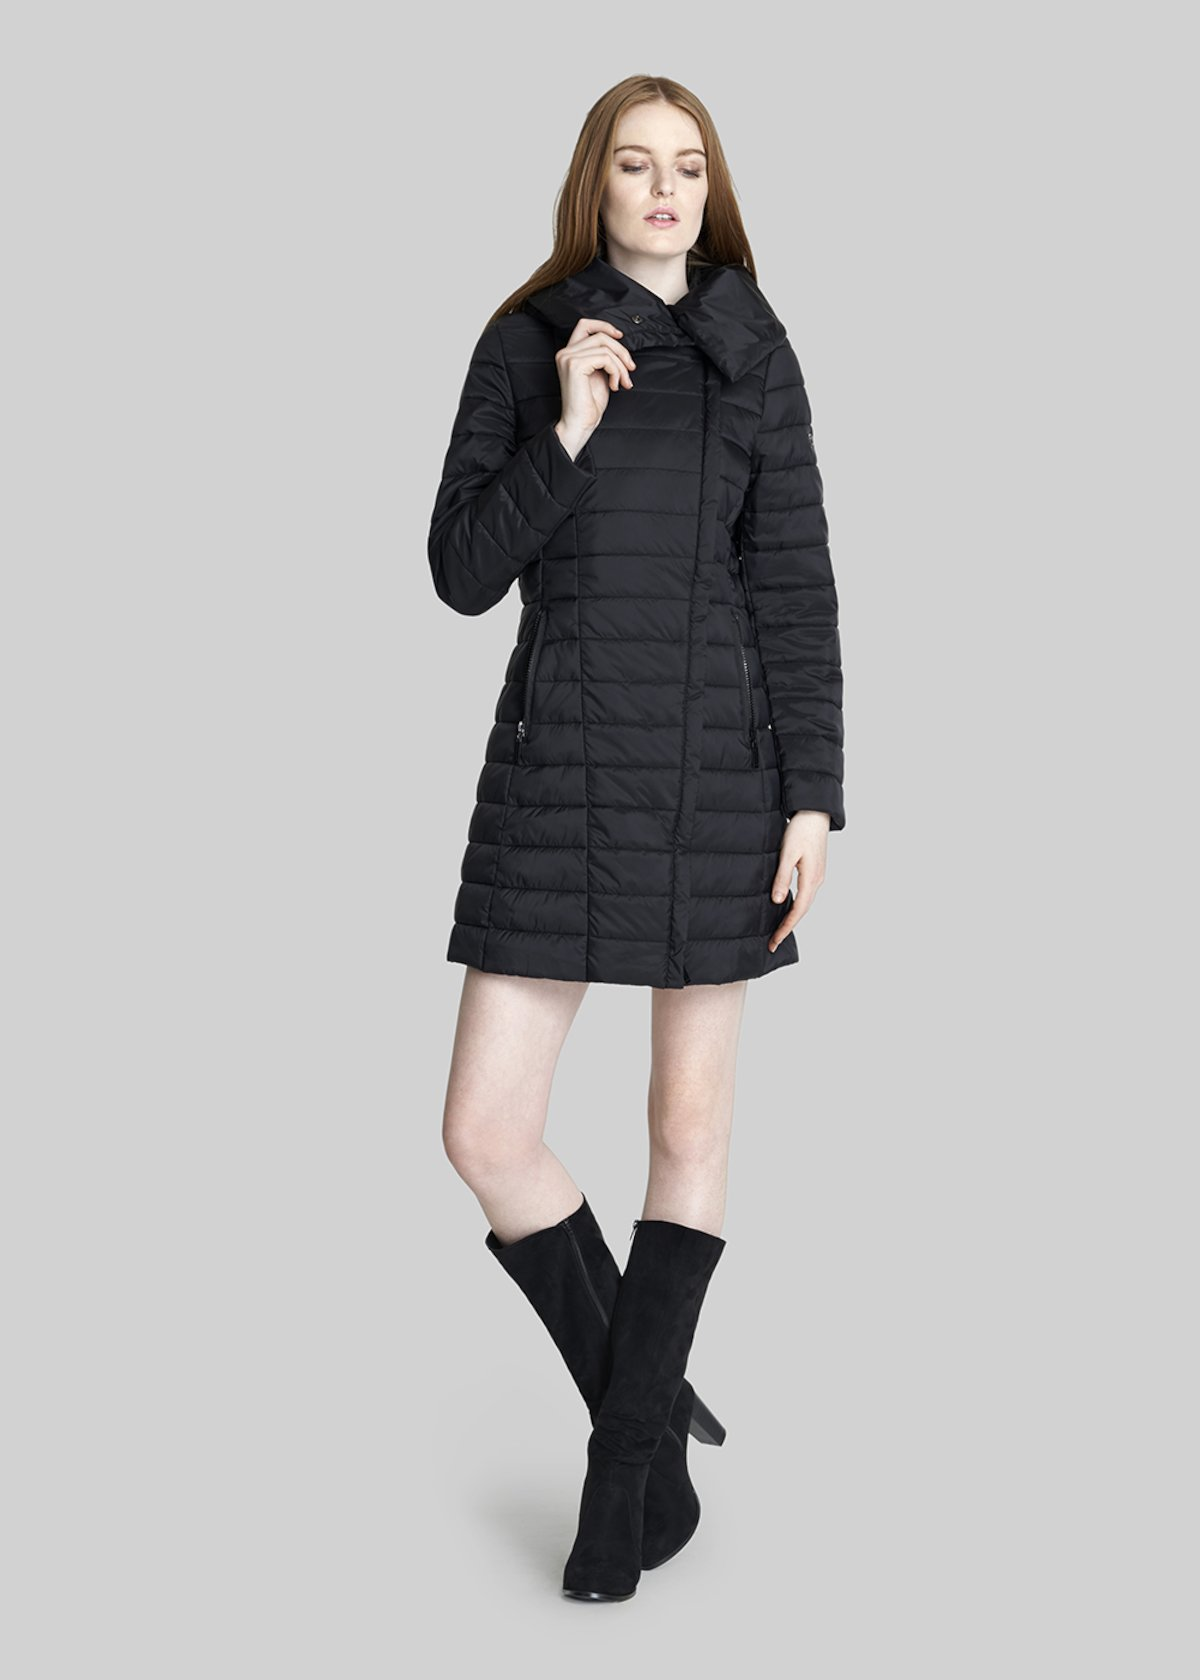 Pedro long down jacket with hood and asymmetrical zip closure